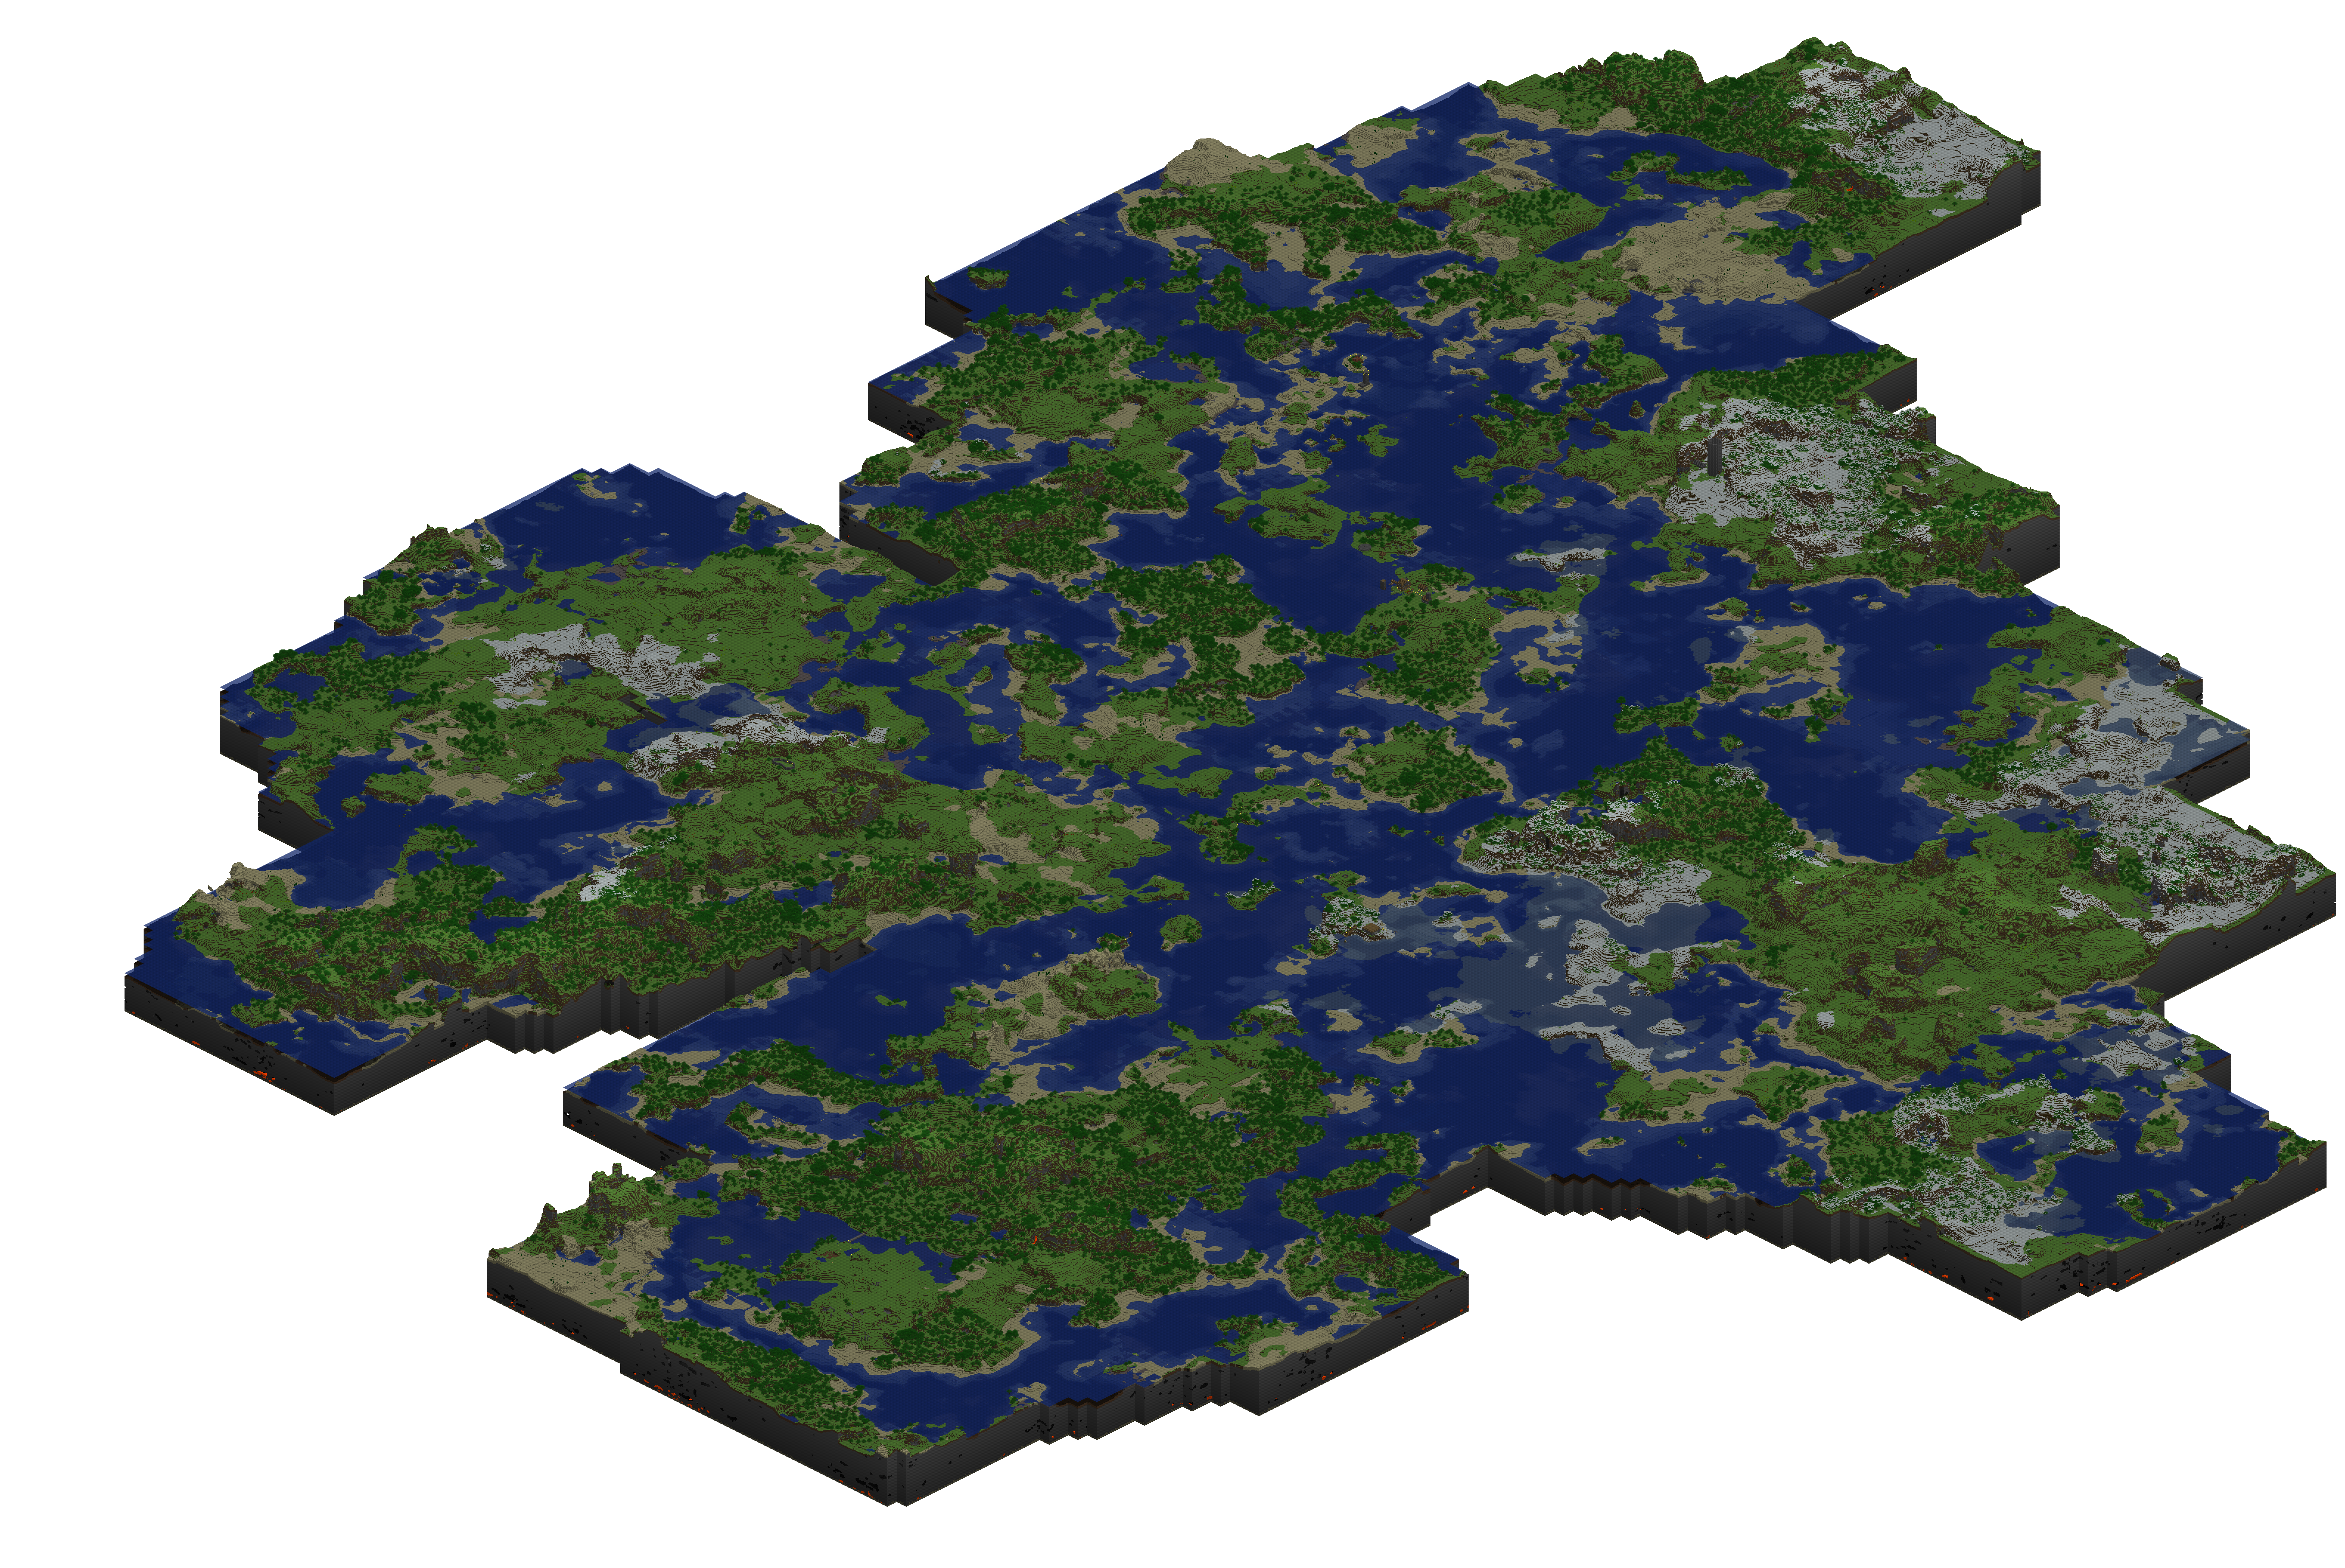 how to download minecraft maps 1.12.1